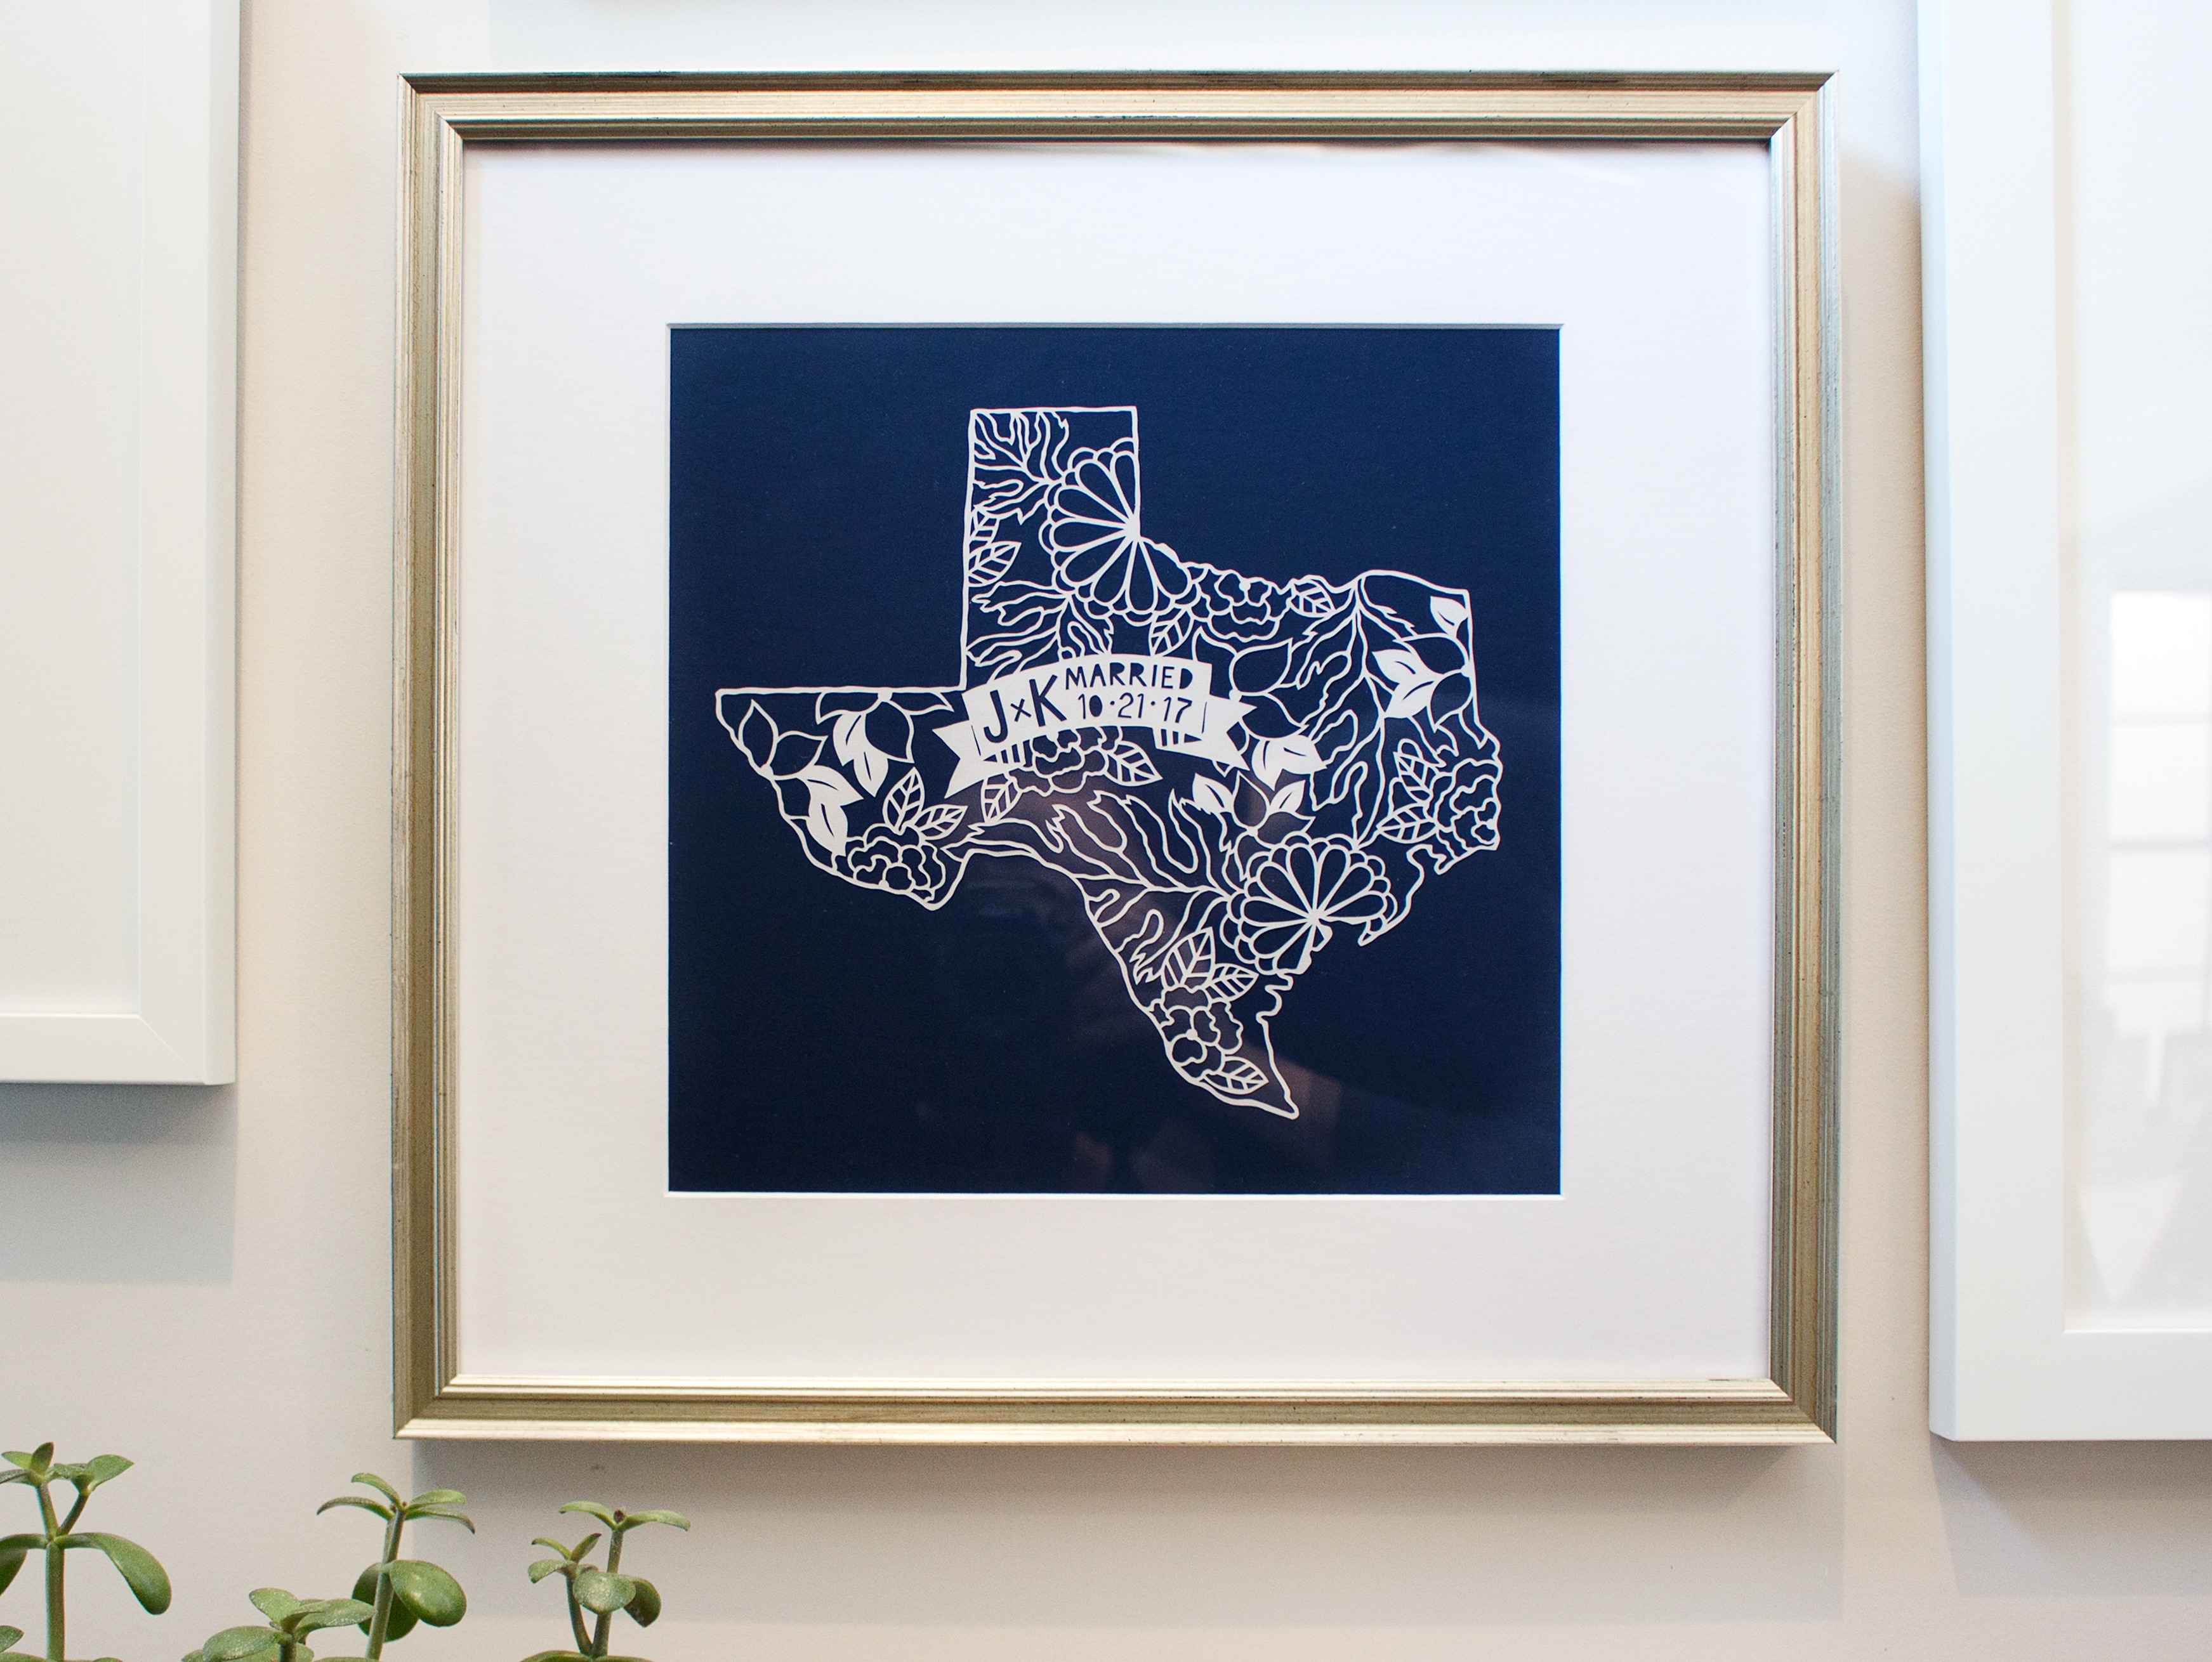 paper cutout of texas